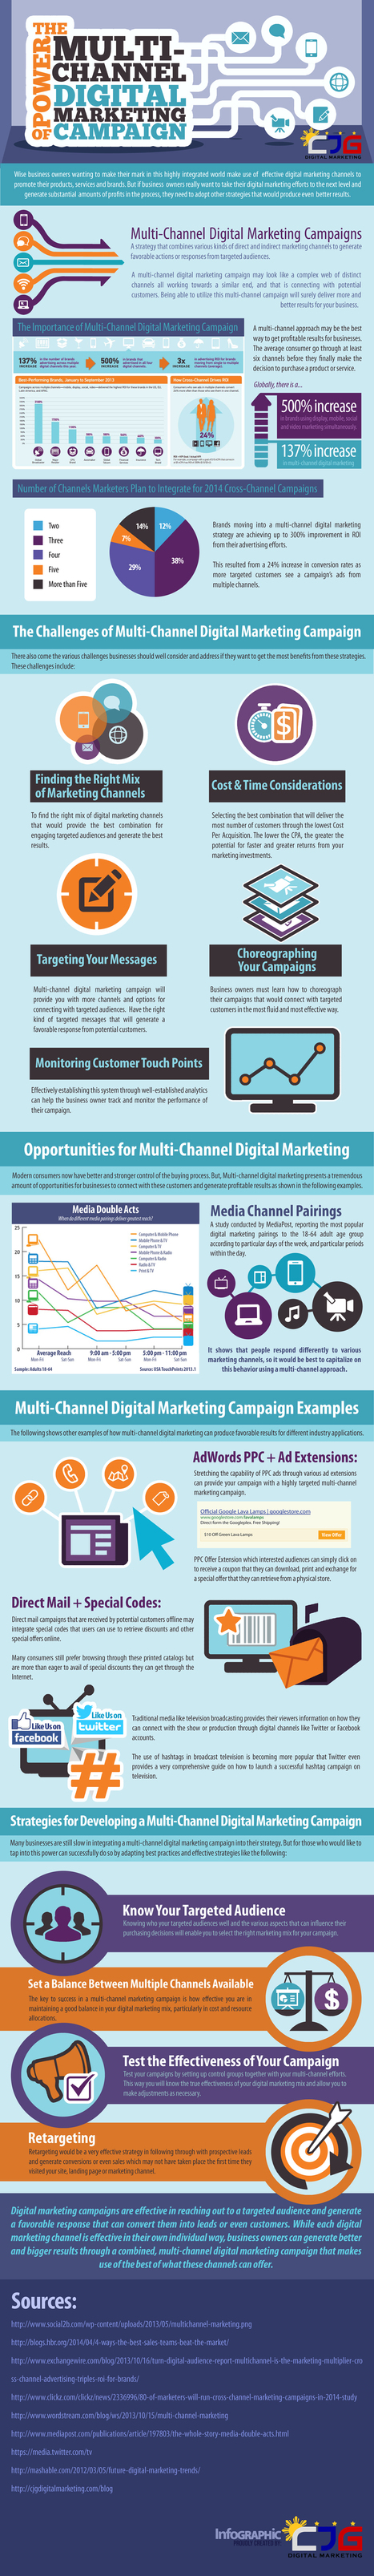 The power of the multi-channel digital marketing campaign #Infographic | MarketingHits | Scoop.it